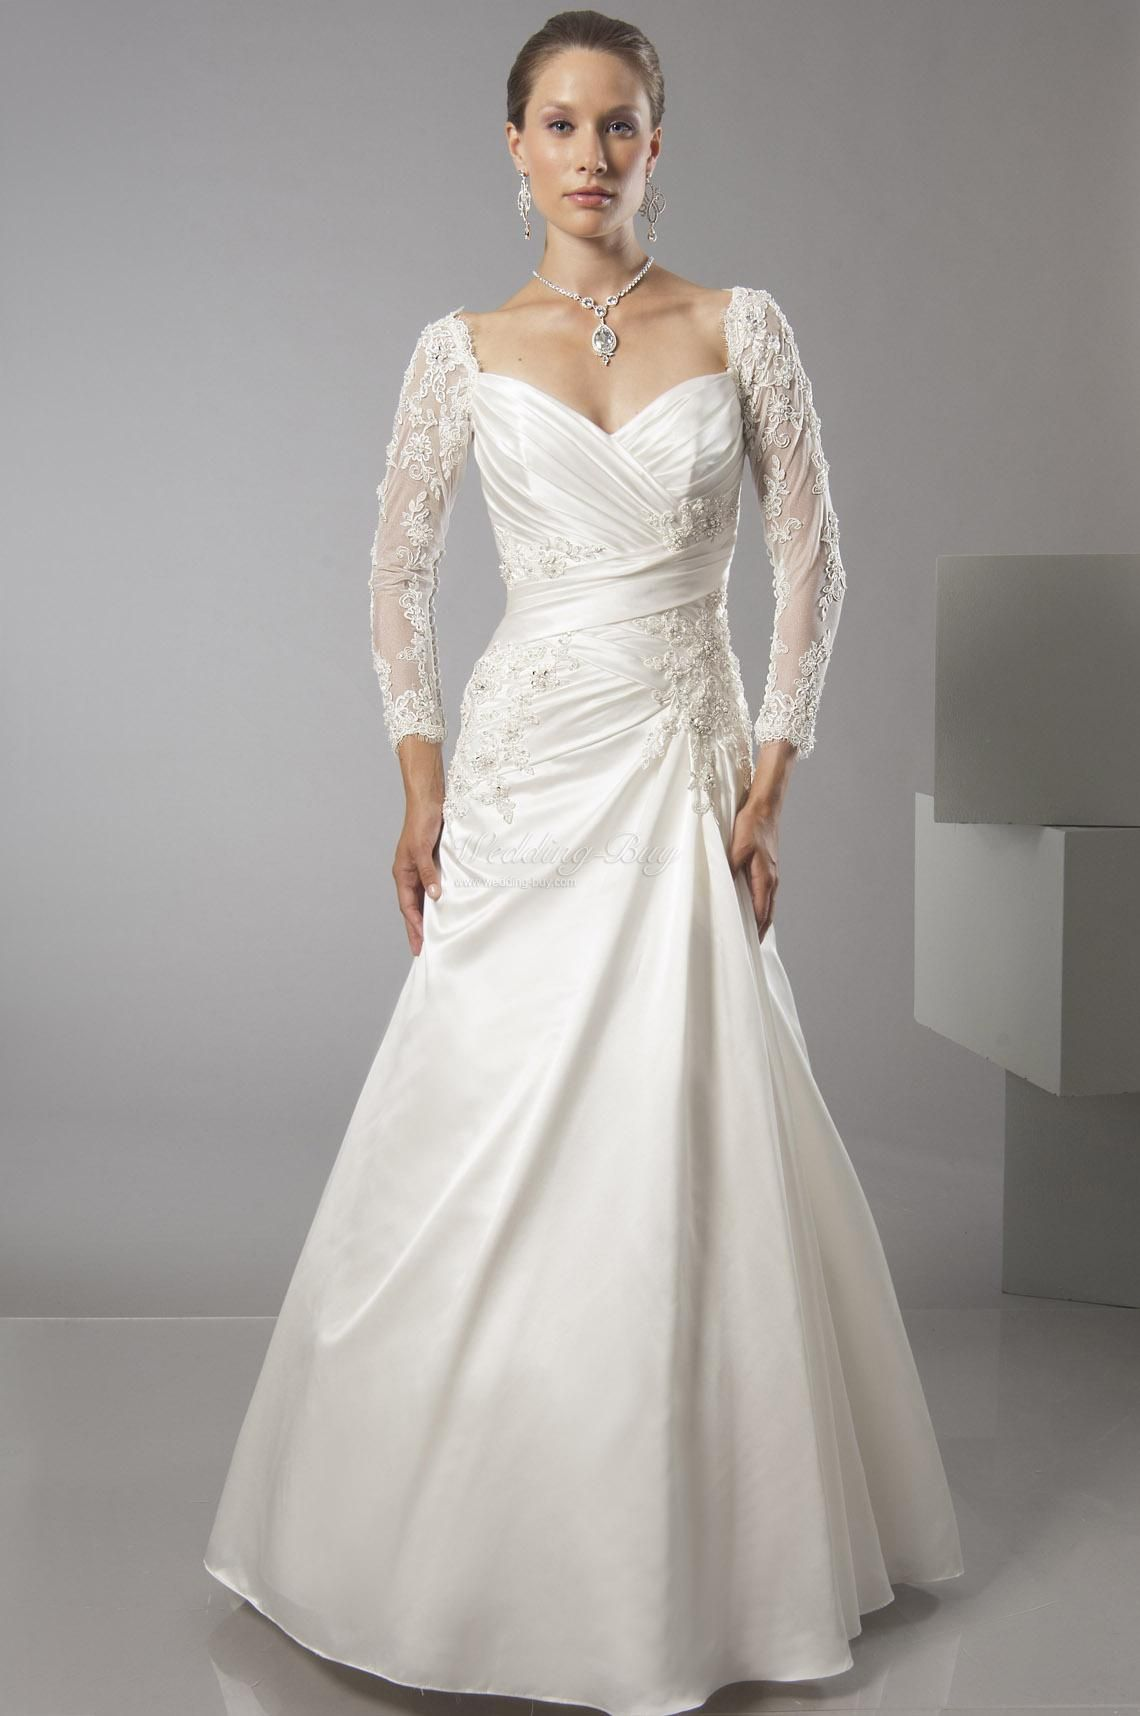 Simple wedding dresses with sleeves simple wedding dresses with